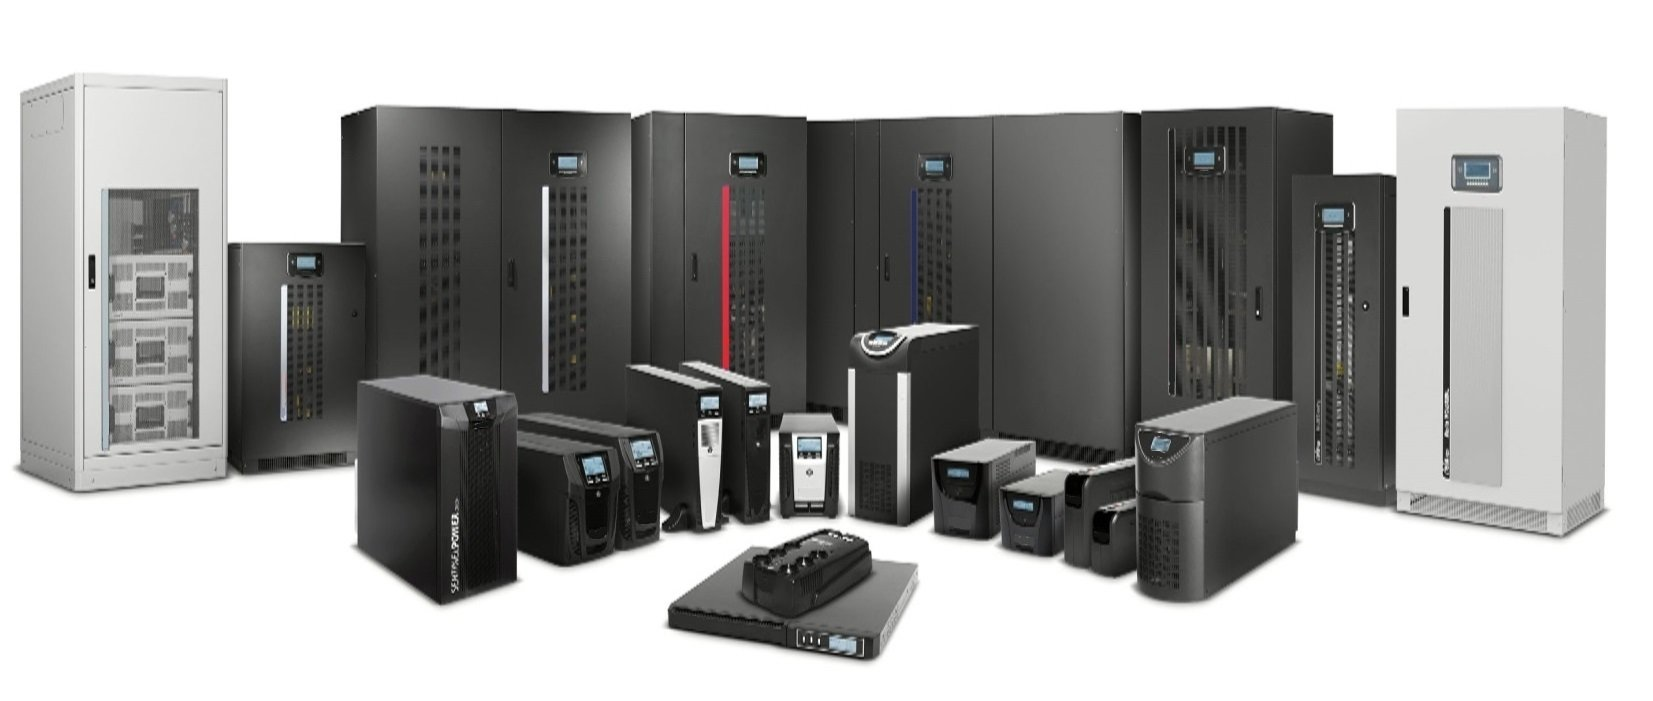 Critical Power Supplies - Riello UPS product range for backup supplies from small home units to mega data centres.